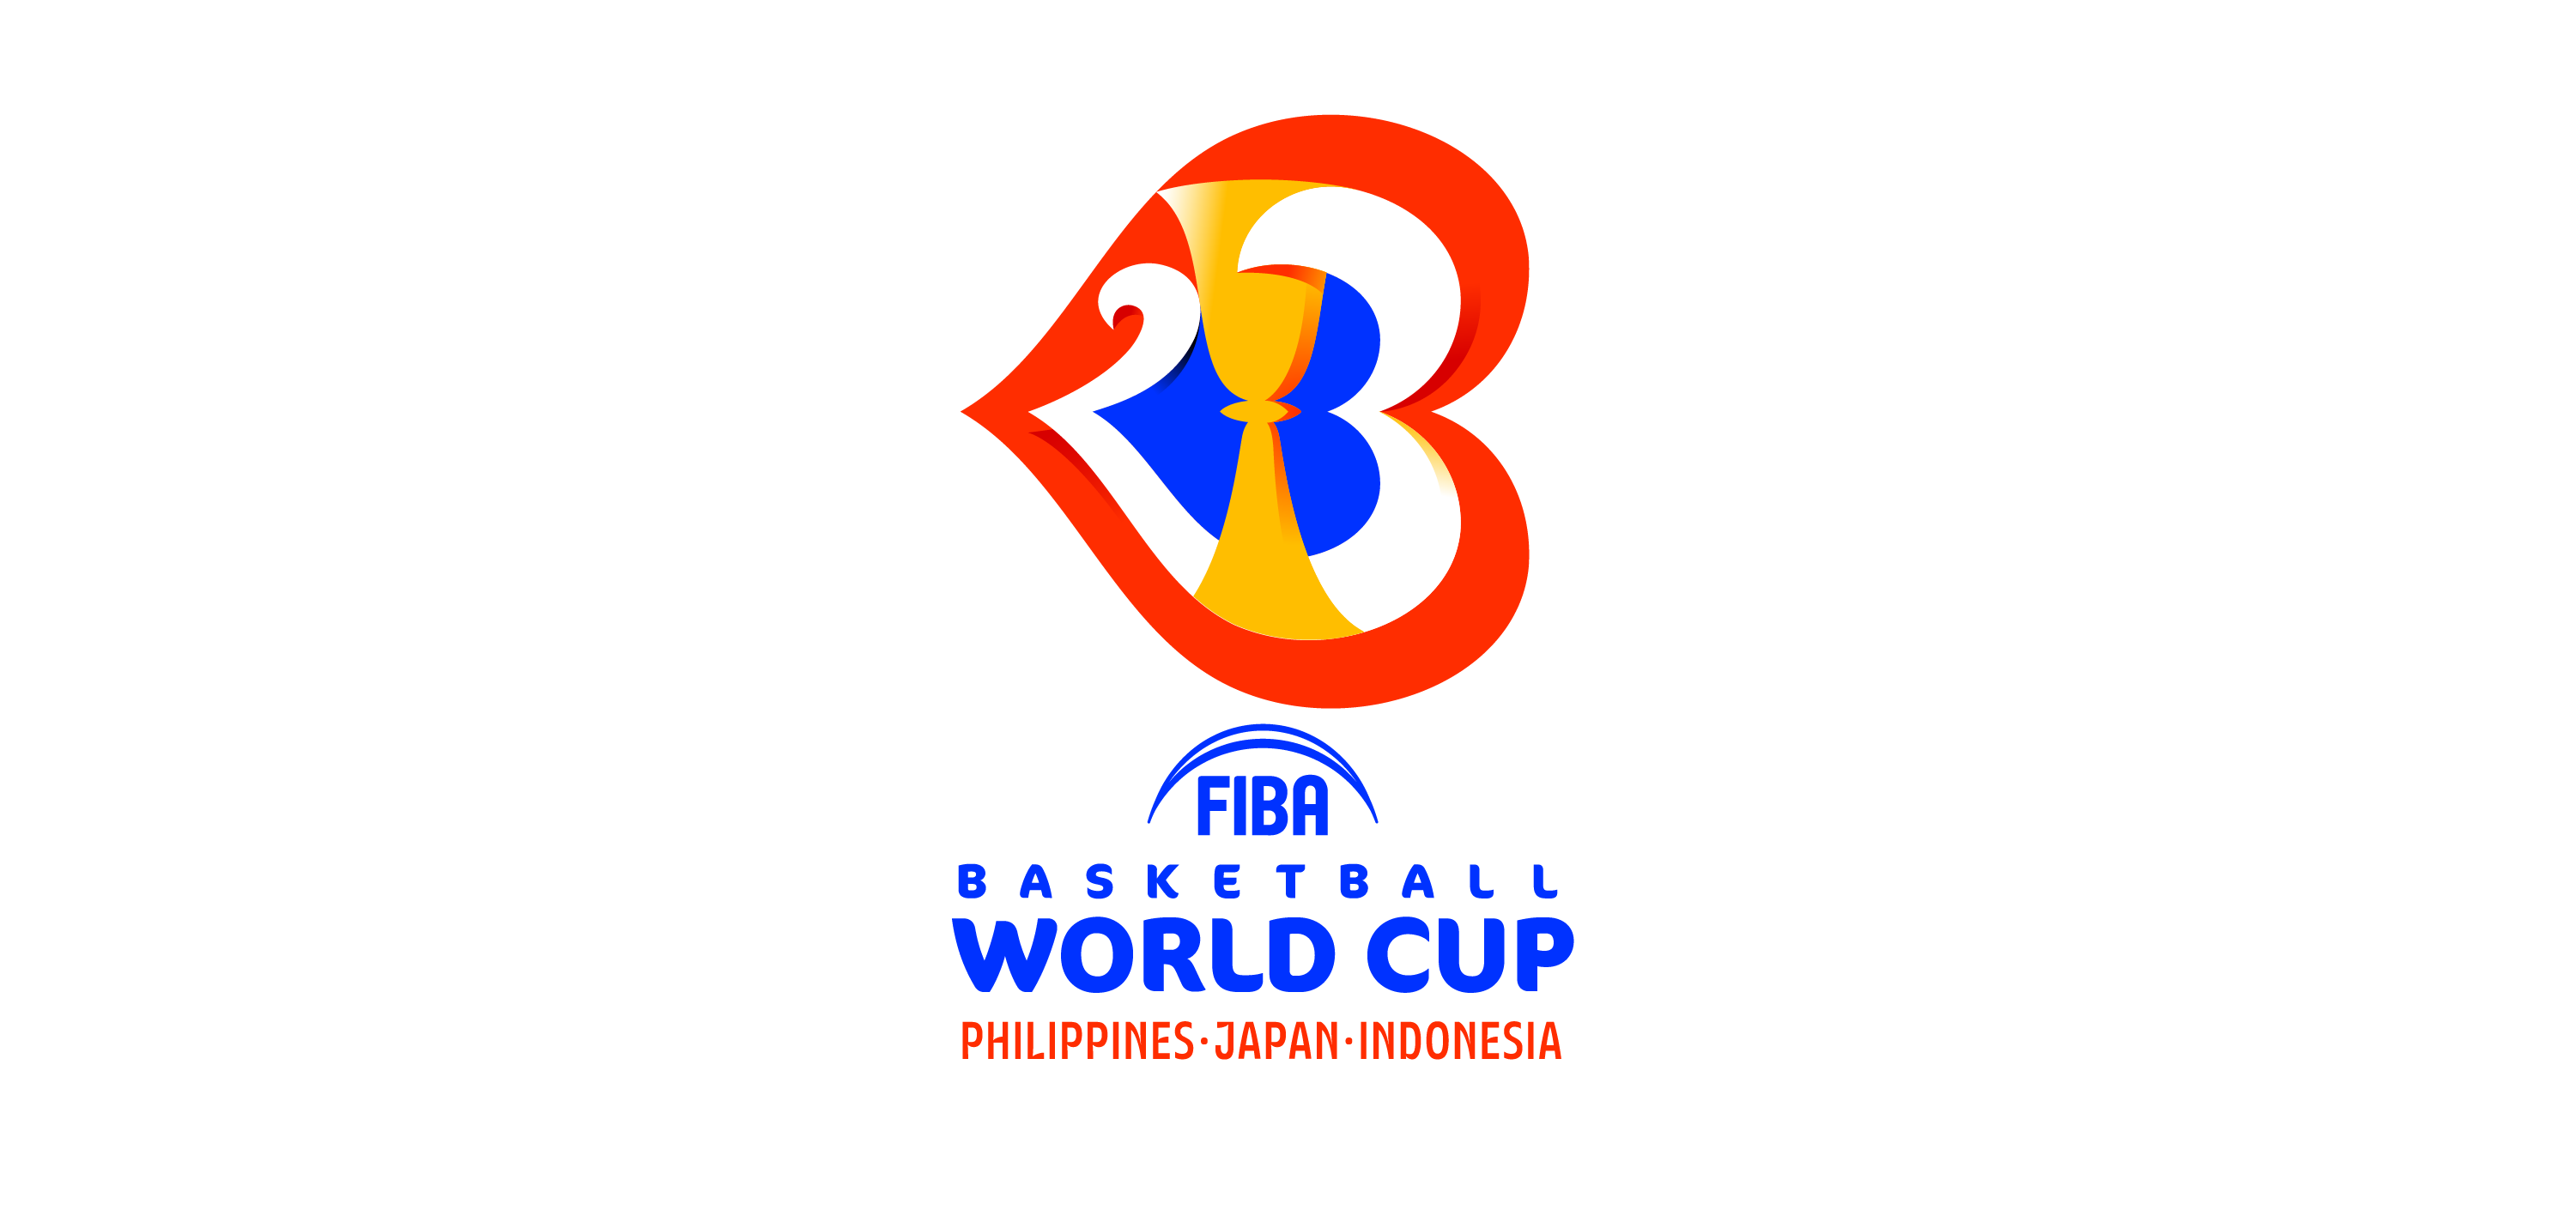 FIBA World Cup 2023 logo vector